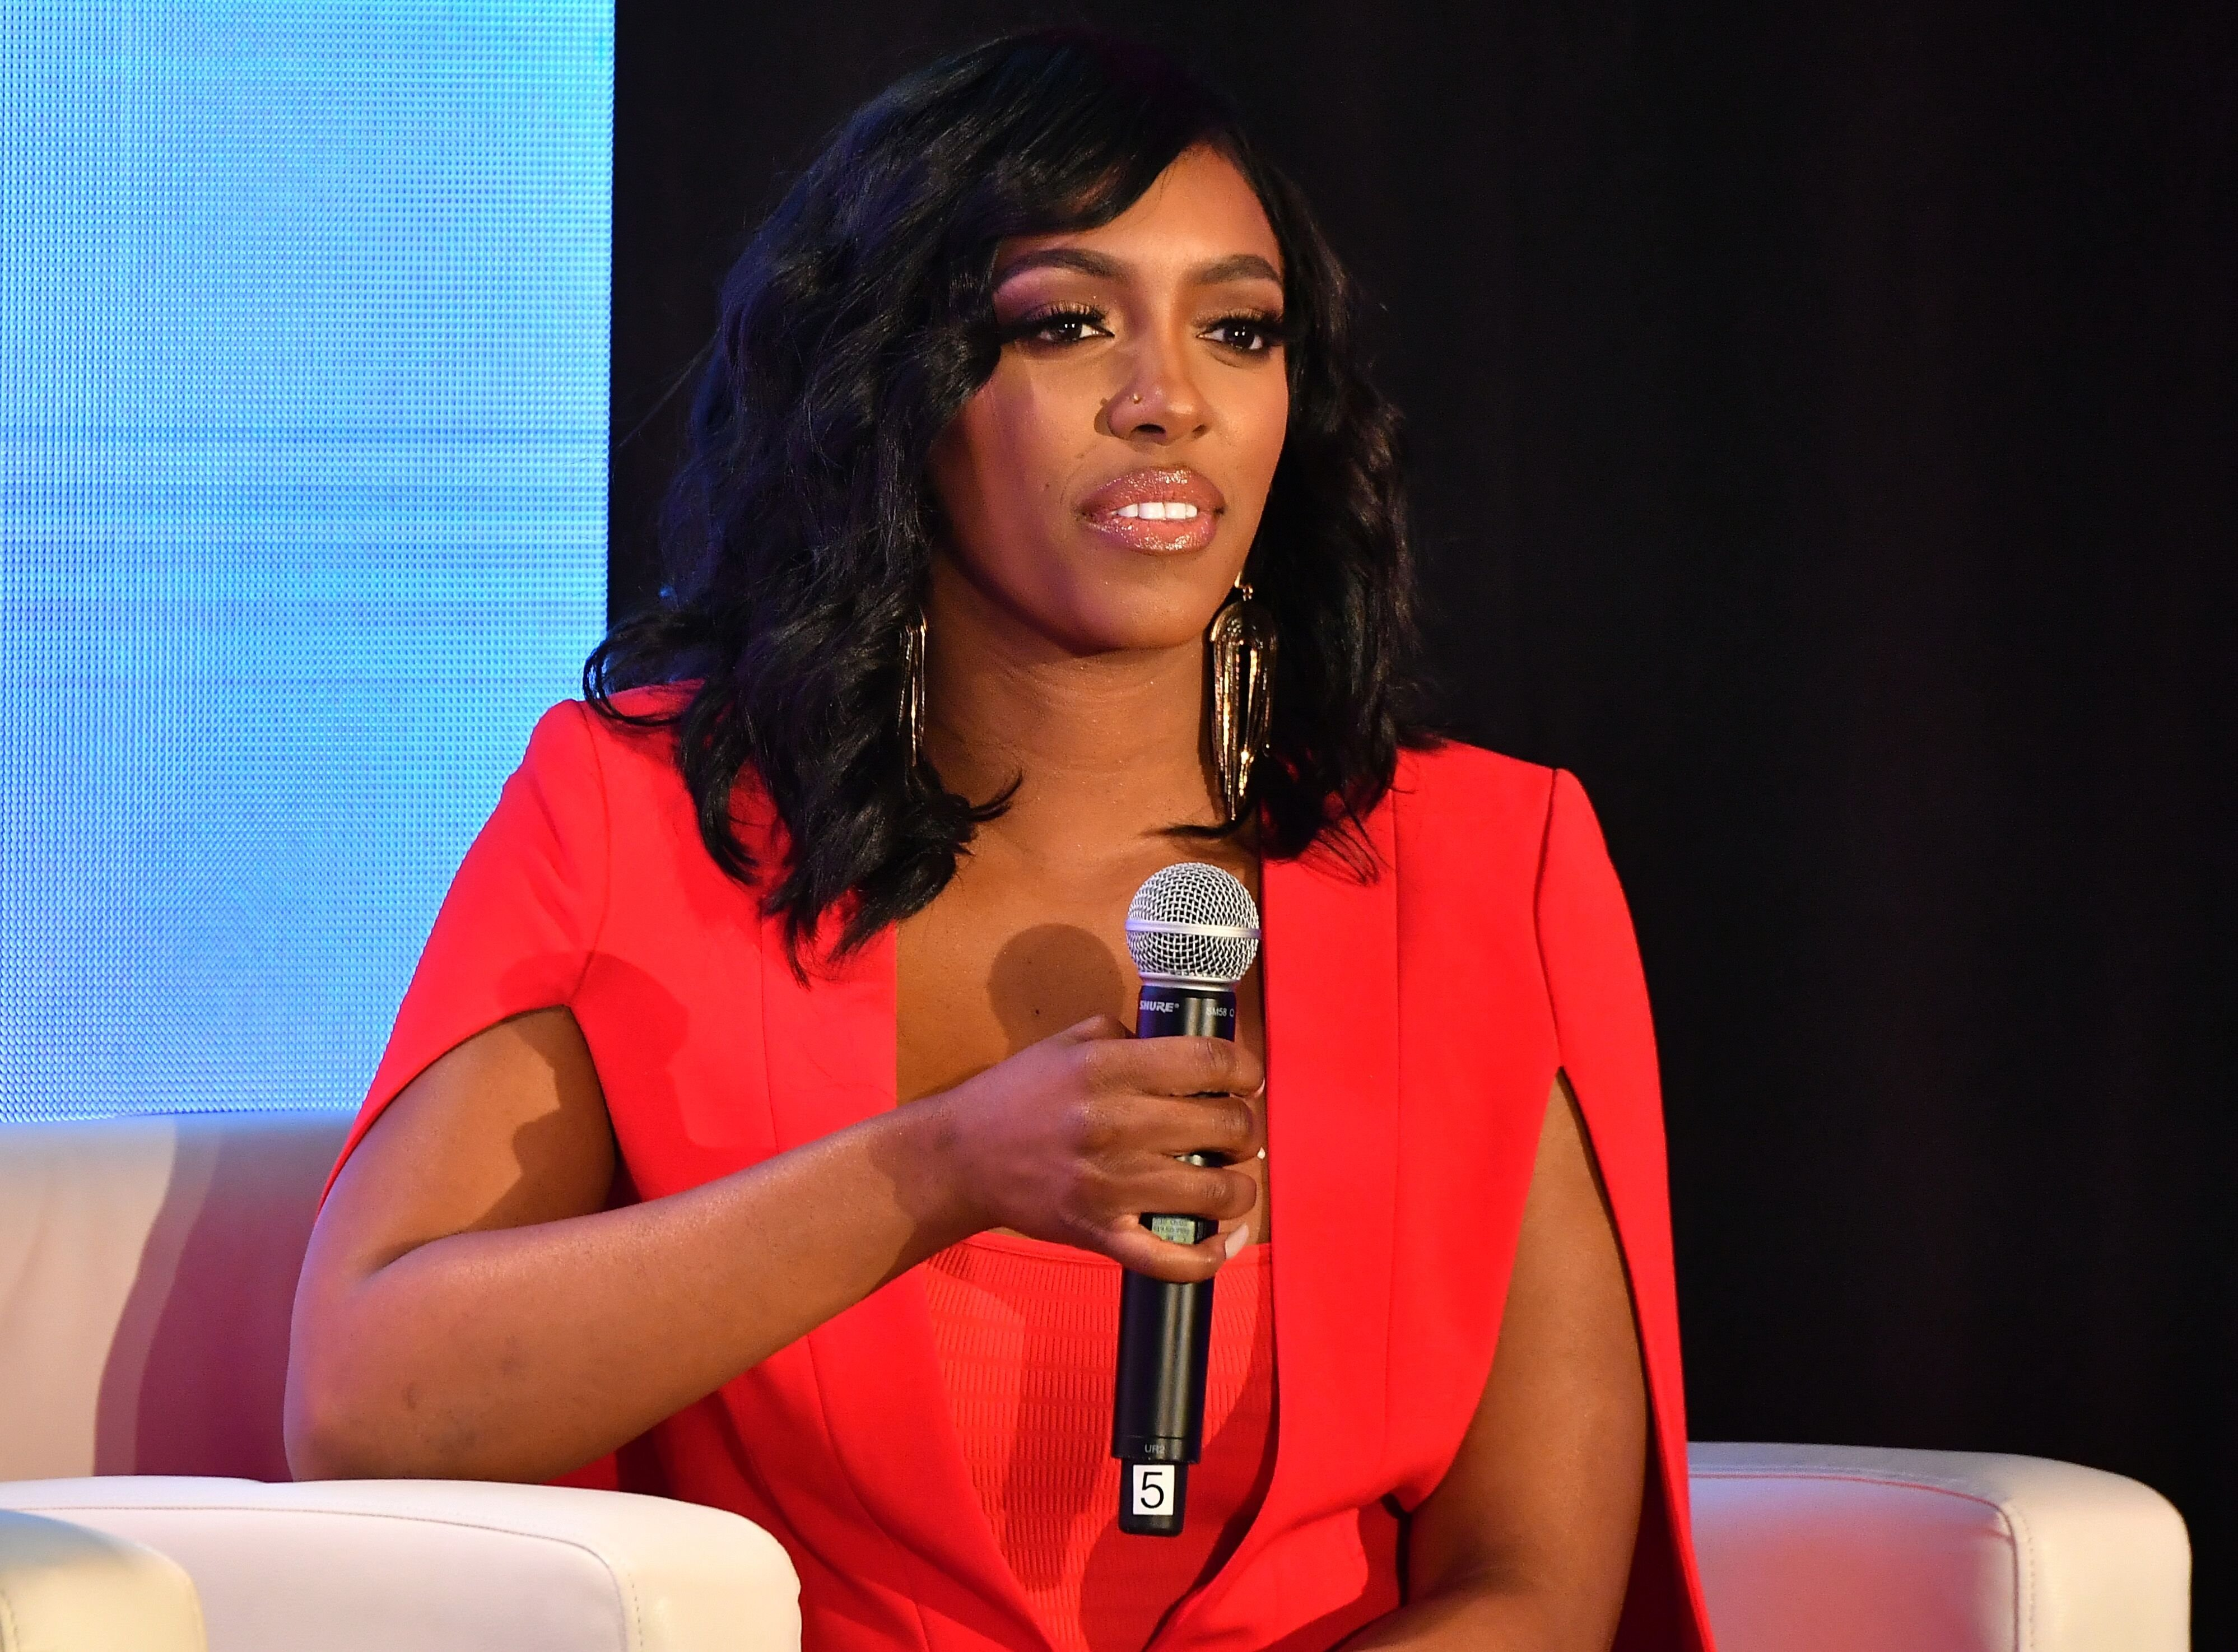 Porsha Williams at the A3C Festival & Conference on Oct. 10, 2019 in Atlanta, Georgia/ Source: Getty Images